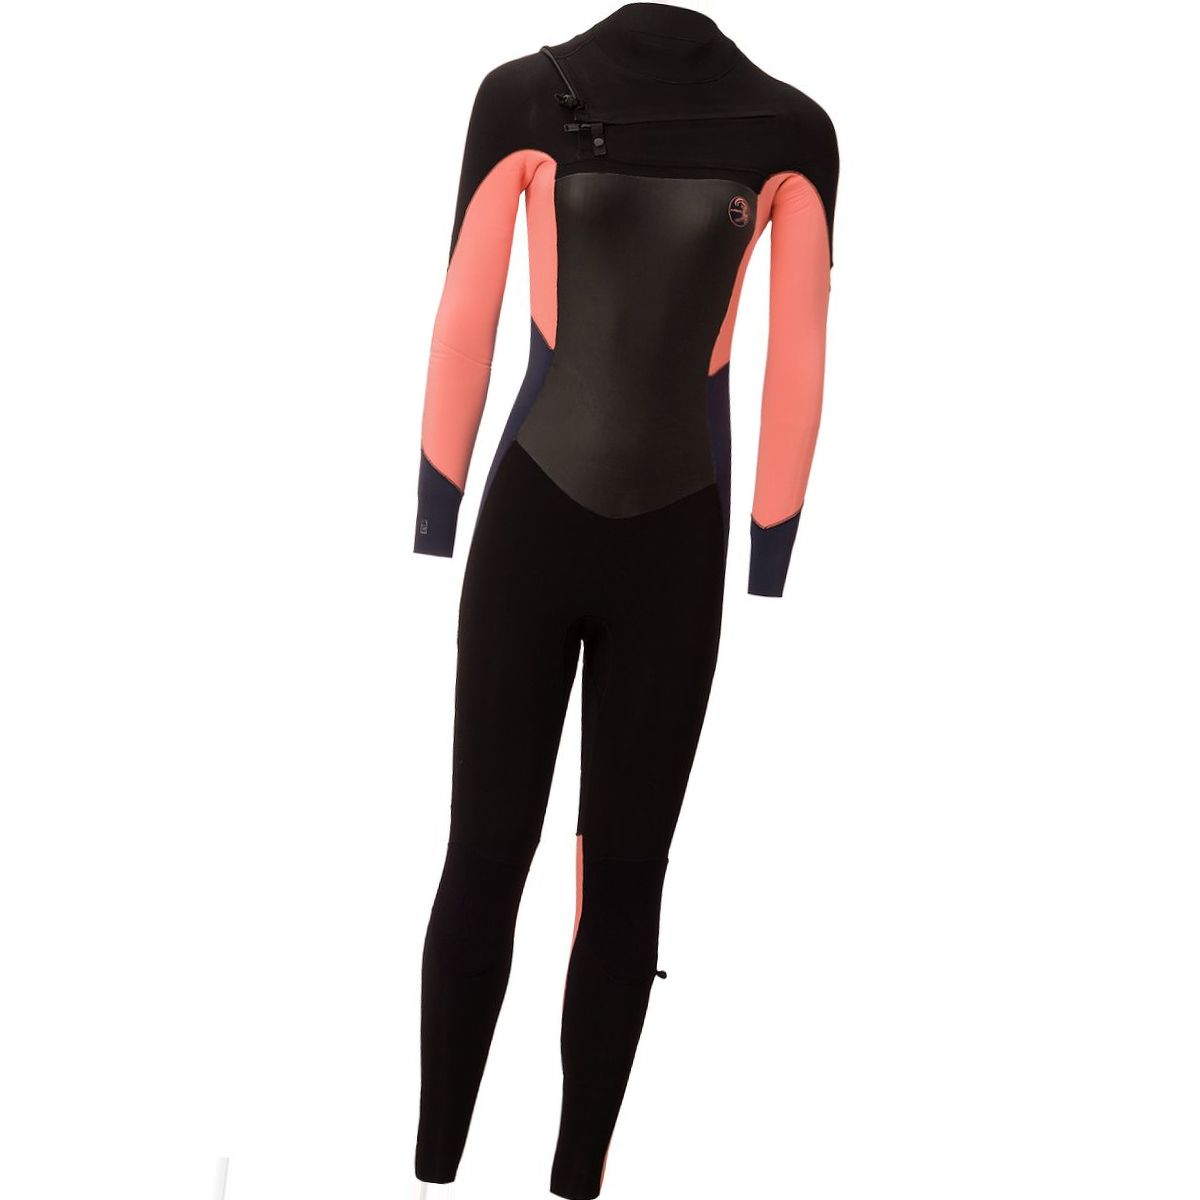 O'Neill O'riginal Fuze 4/3 Taped Wetsuit - Women's